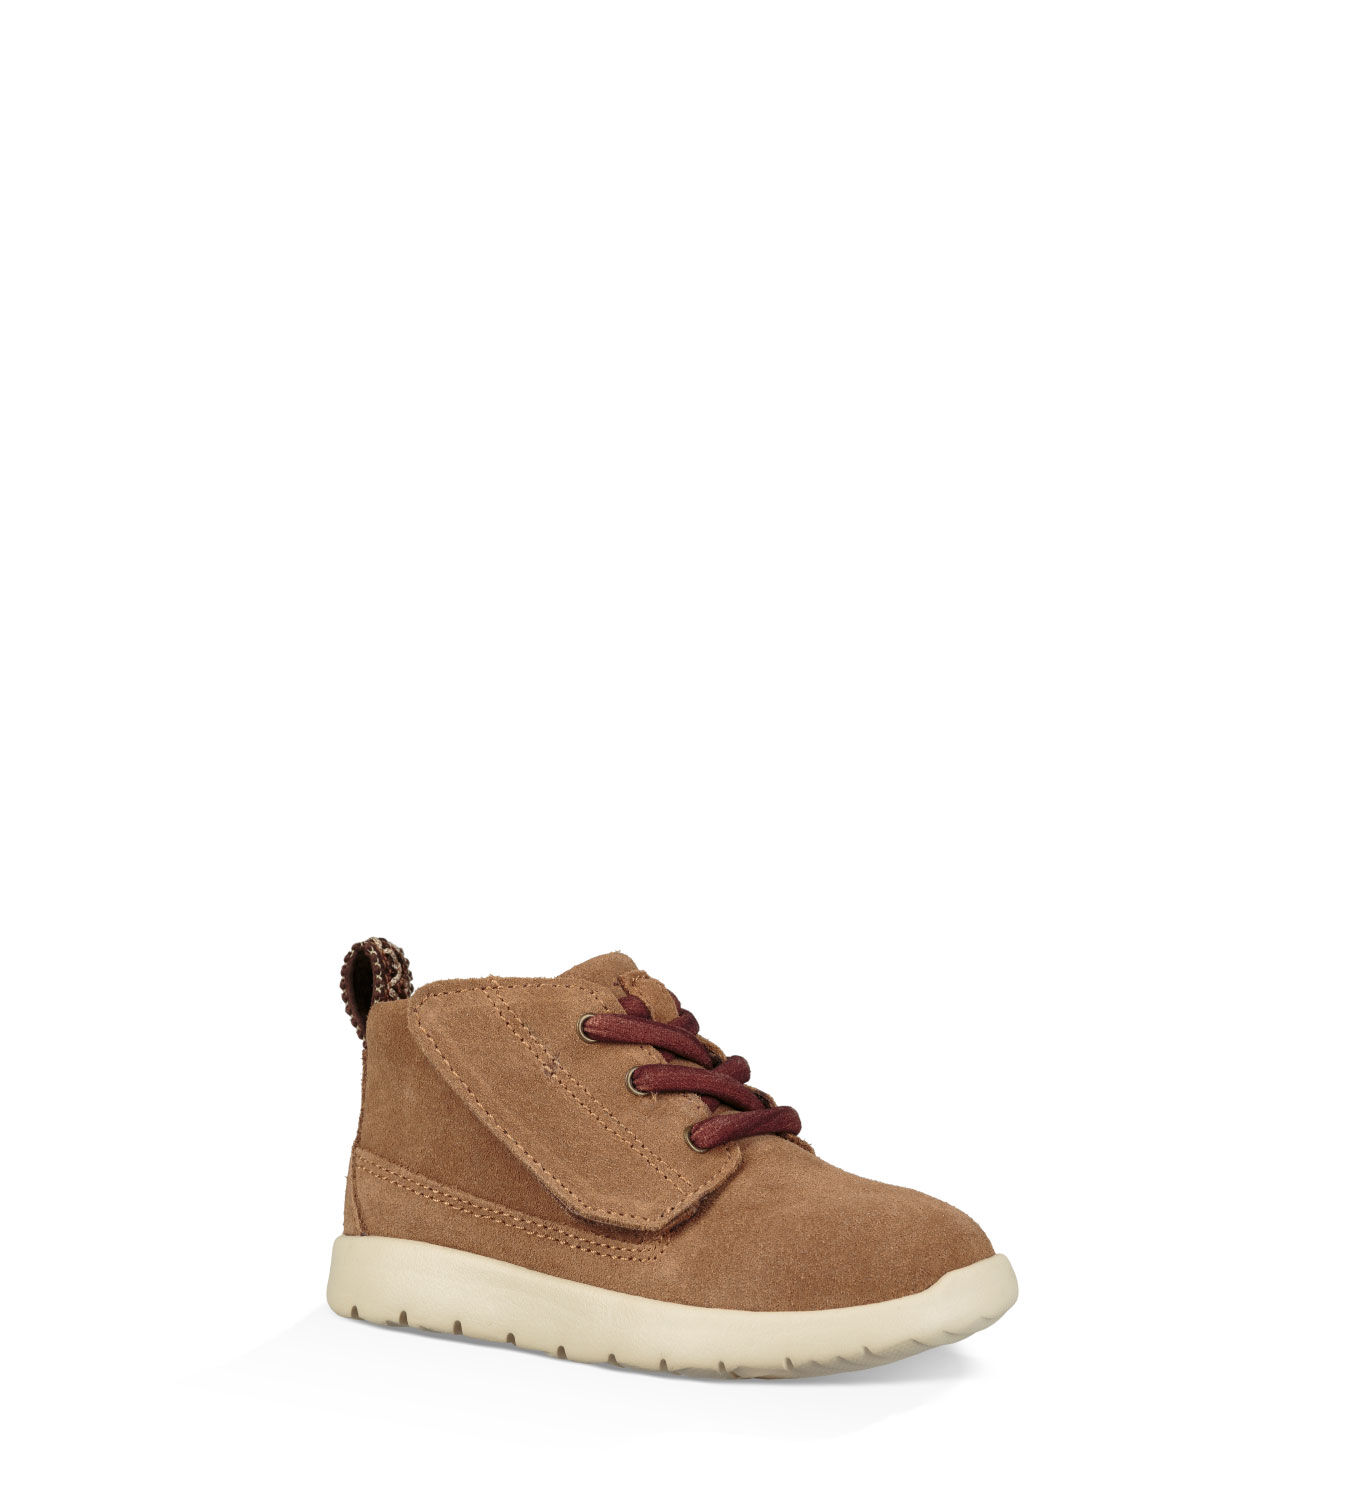 Canoe Suede Chukka for Toddlers | UGG